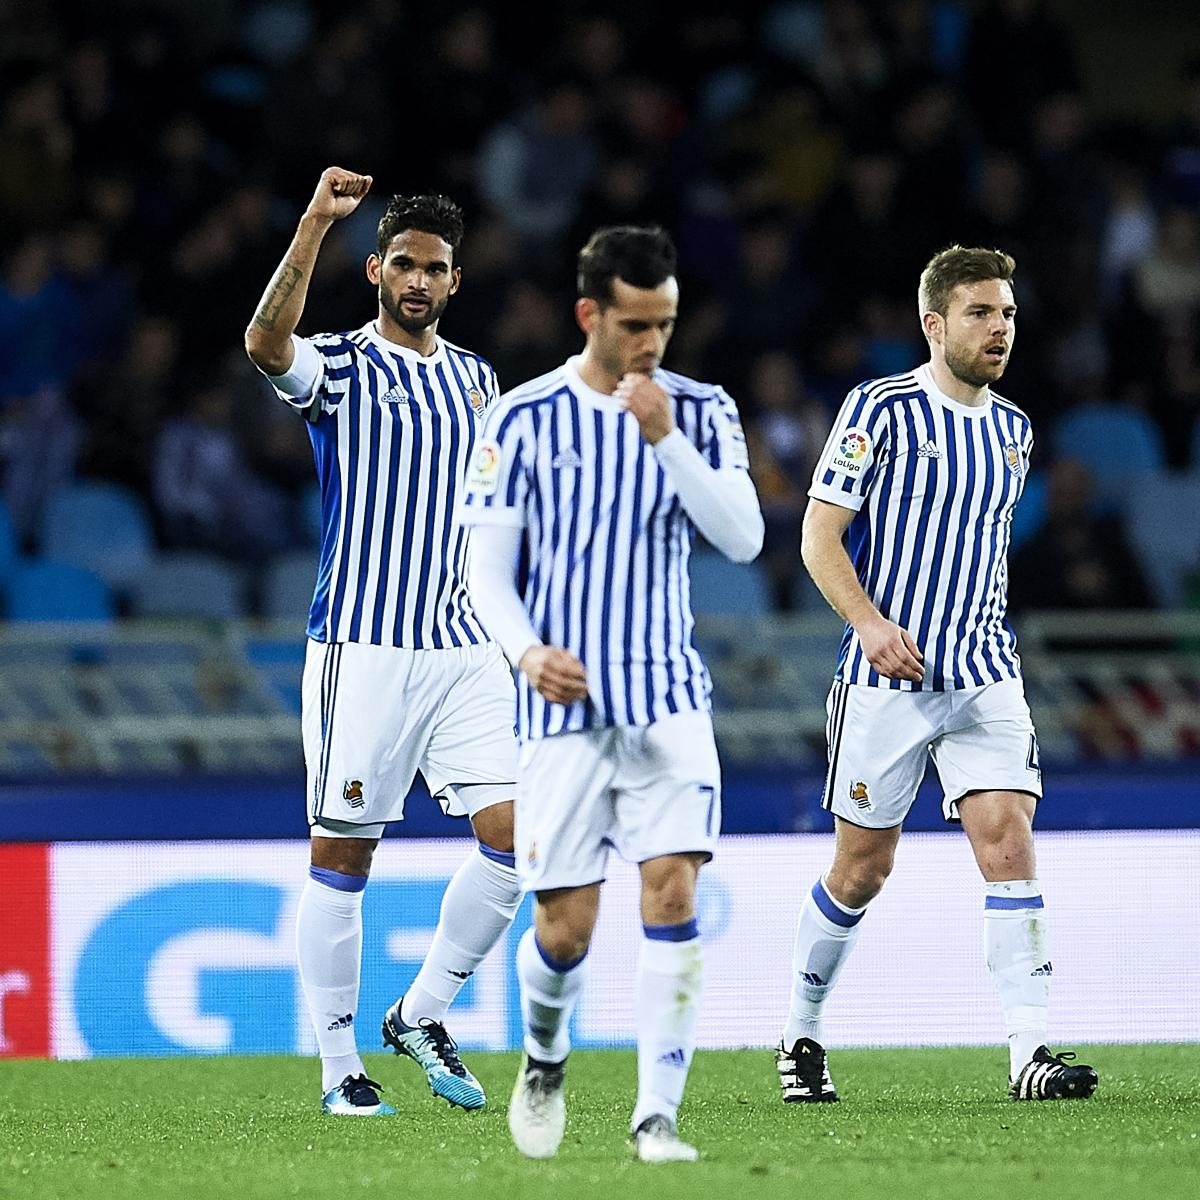 La liga table 2018 latest standings following friday 39 s week 22 results bleacher report - La liga latest results and table ...